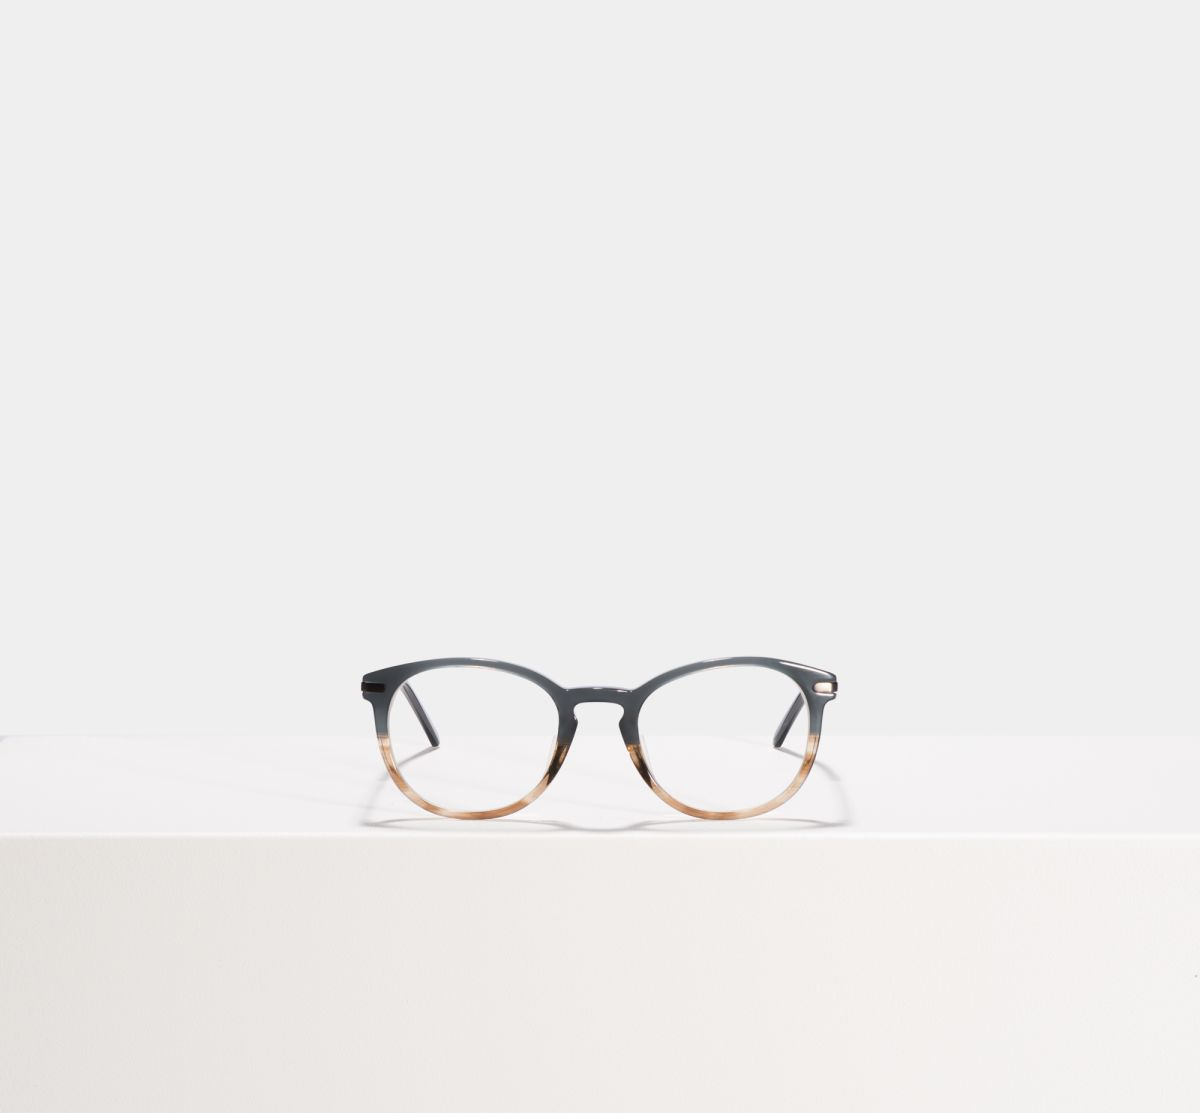 Franck square combi glasses in Teal Oak by Ace & Tate